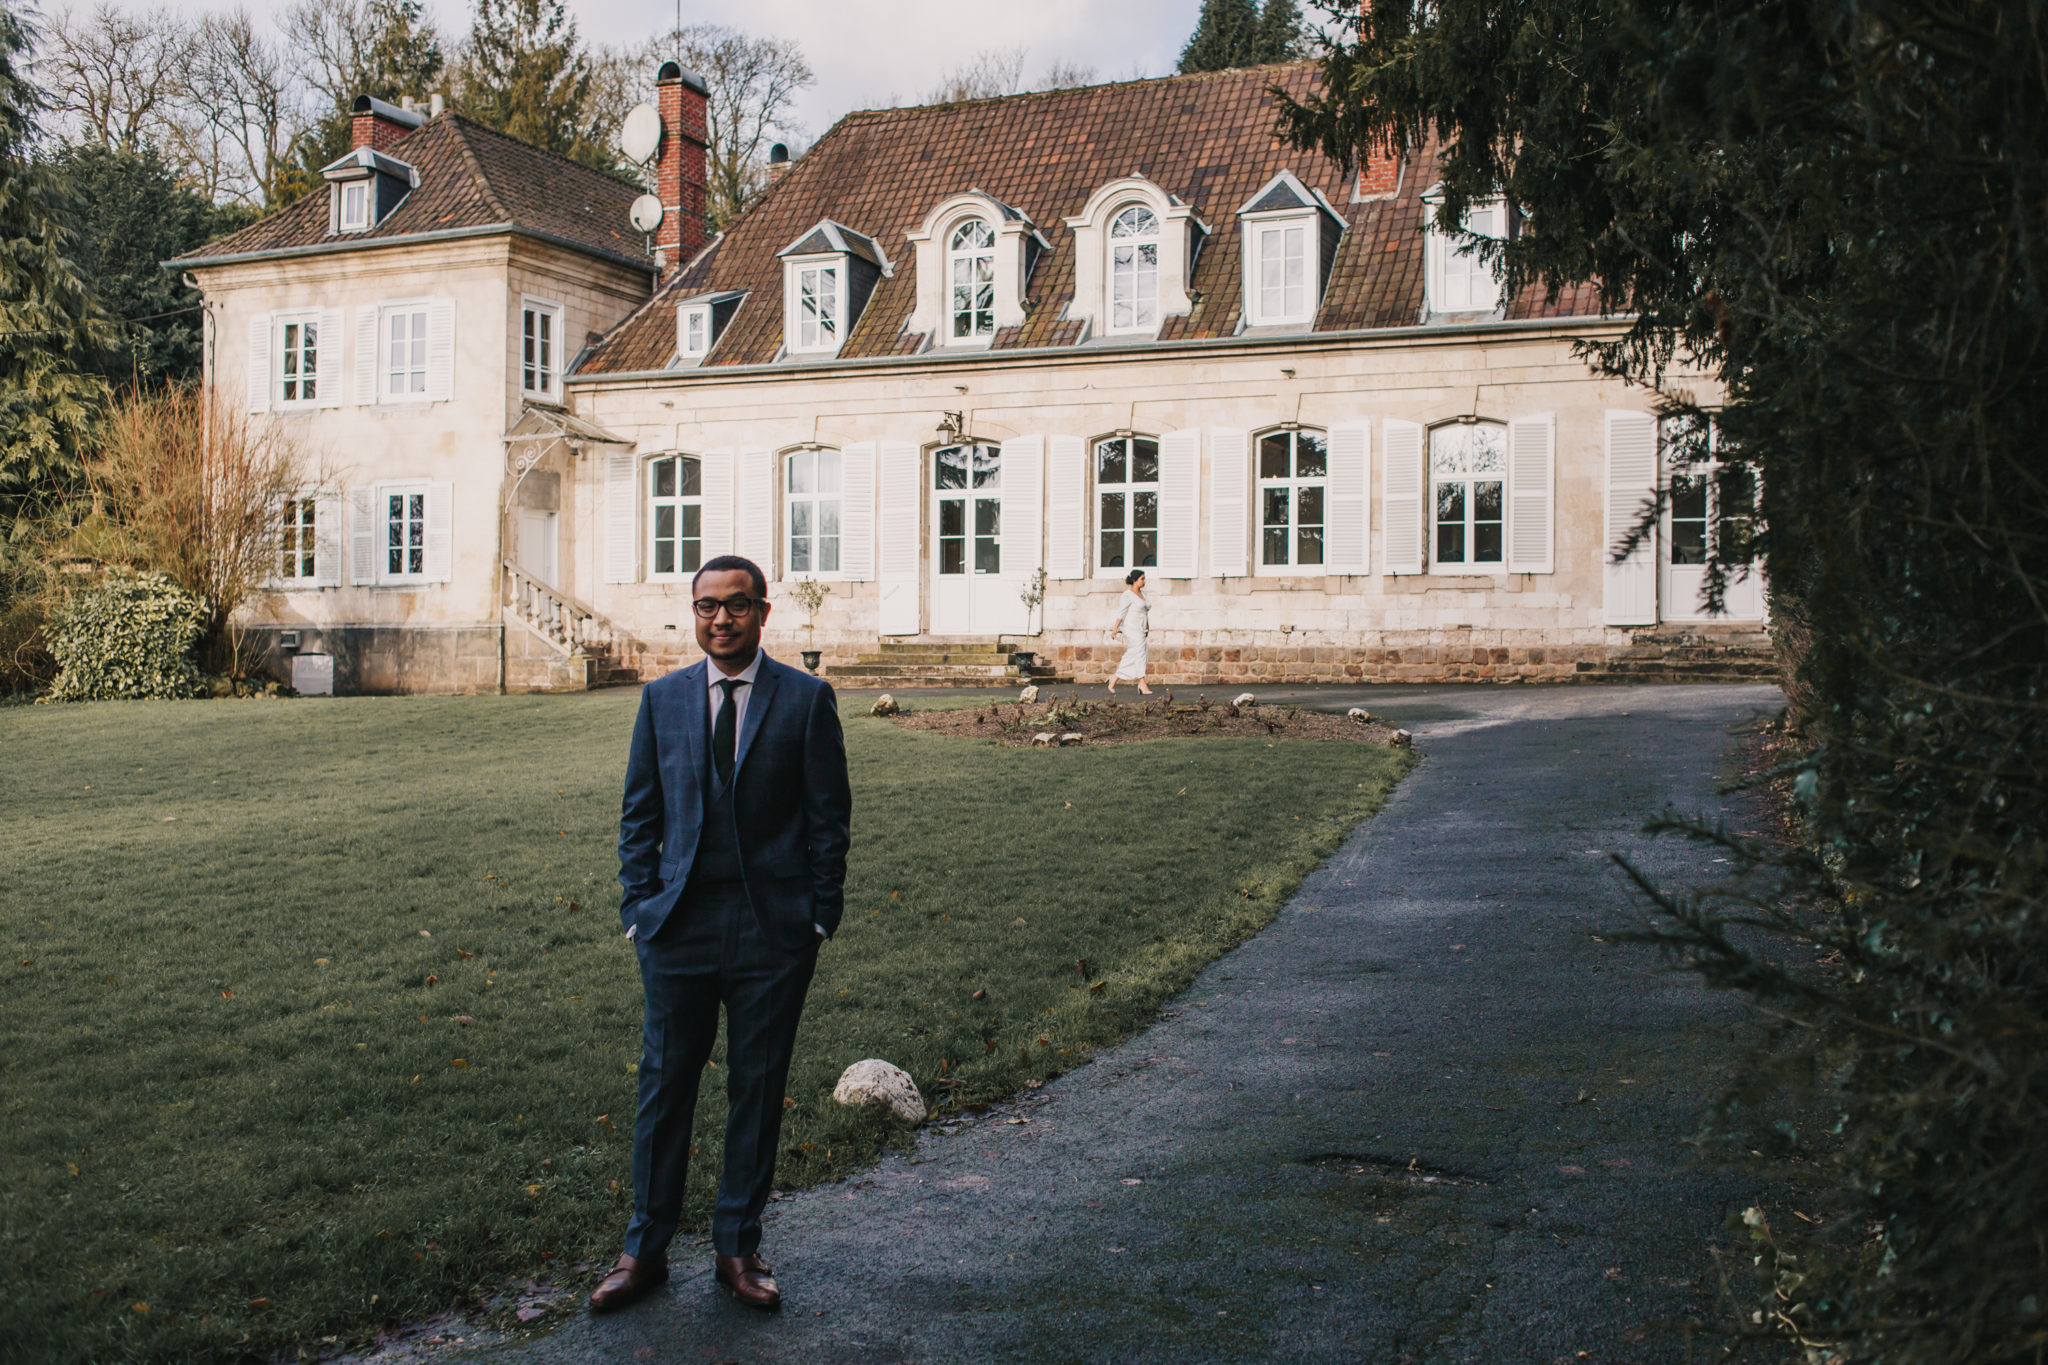 Découverte first look mariage hiver Chateau Naours Picardie Amiens